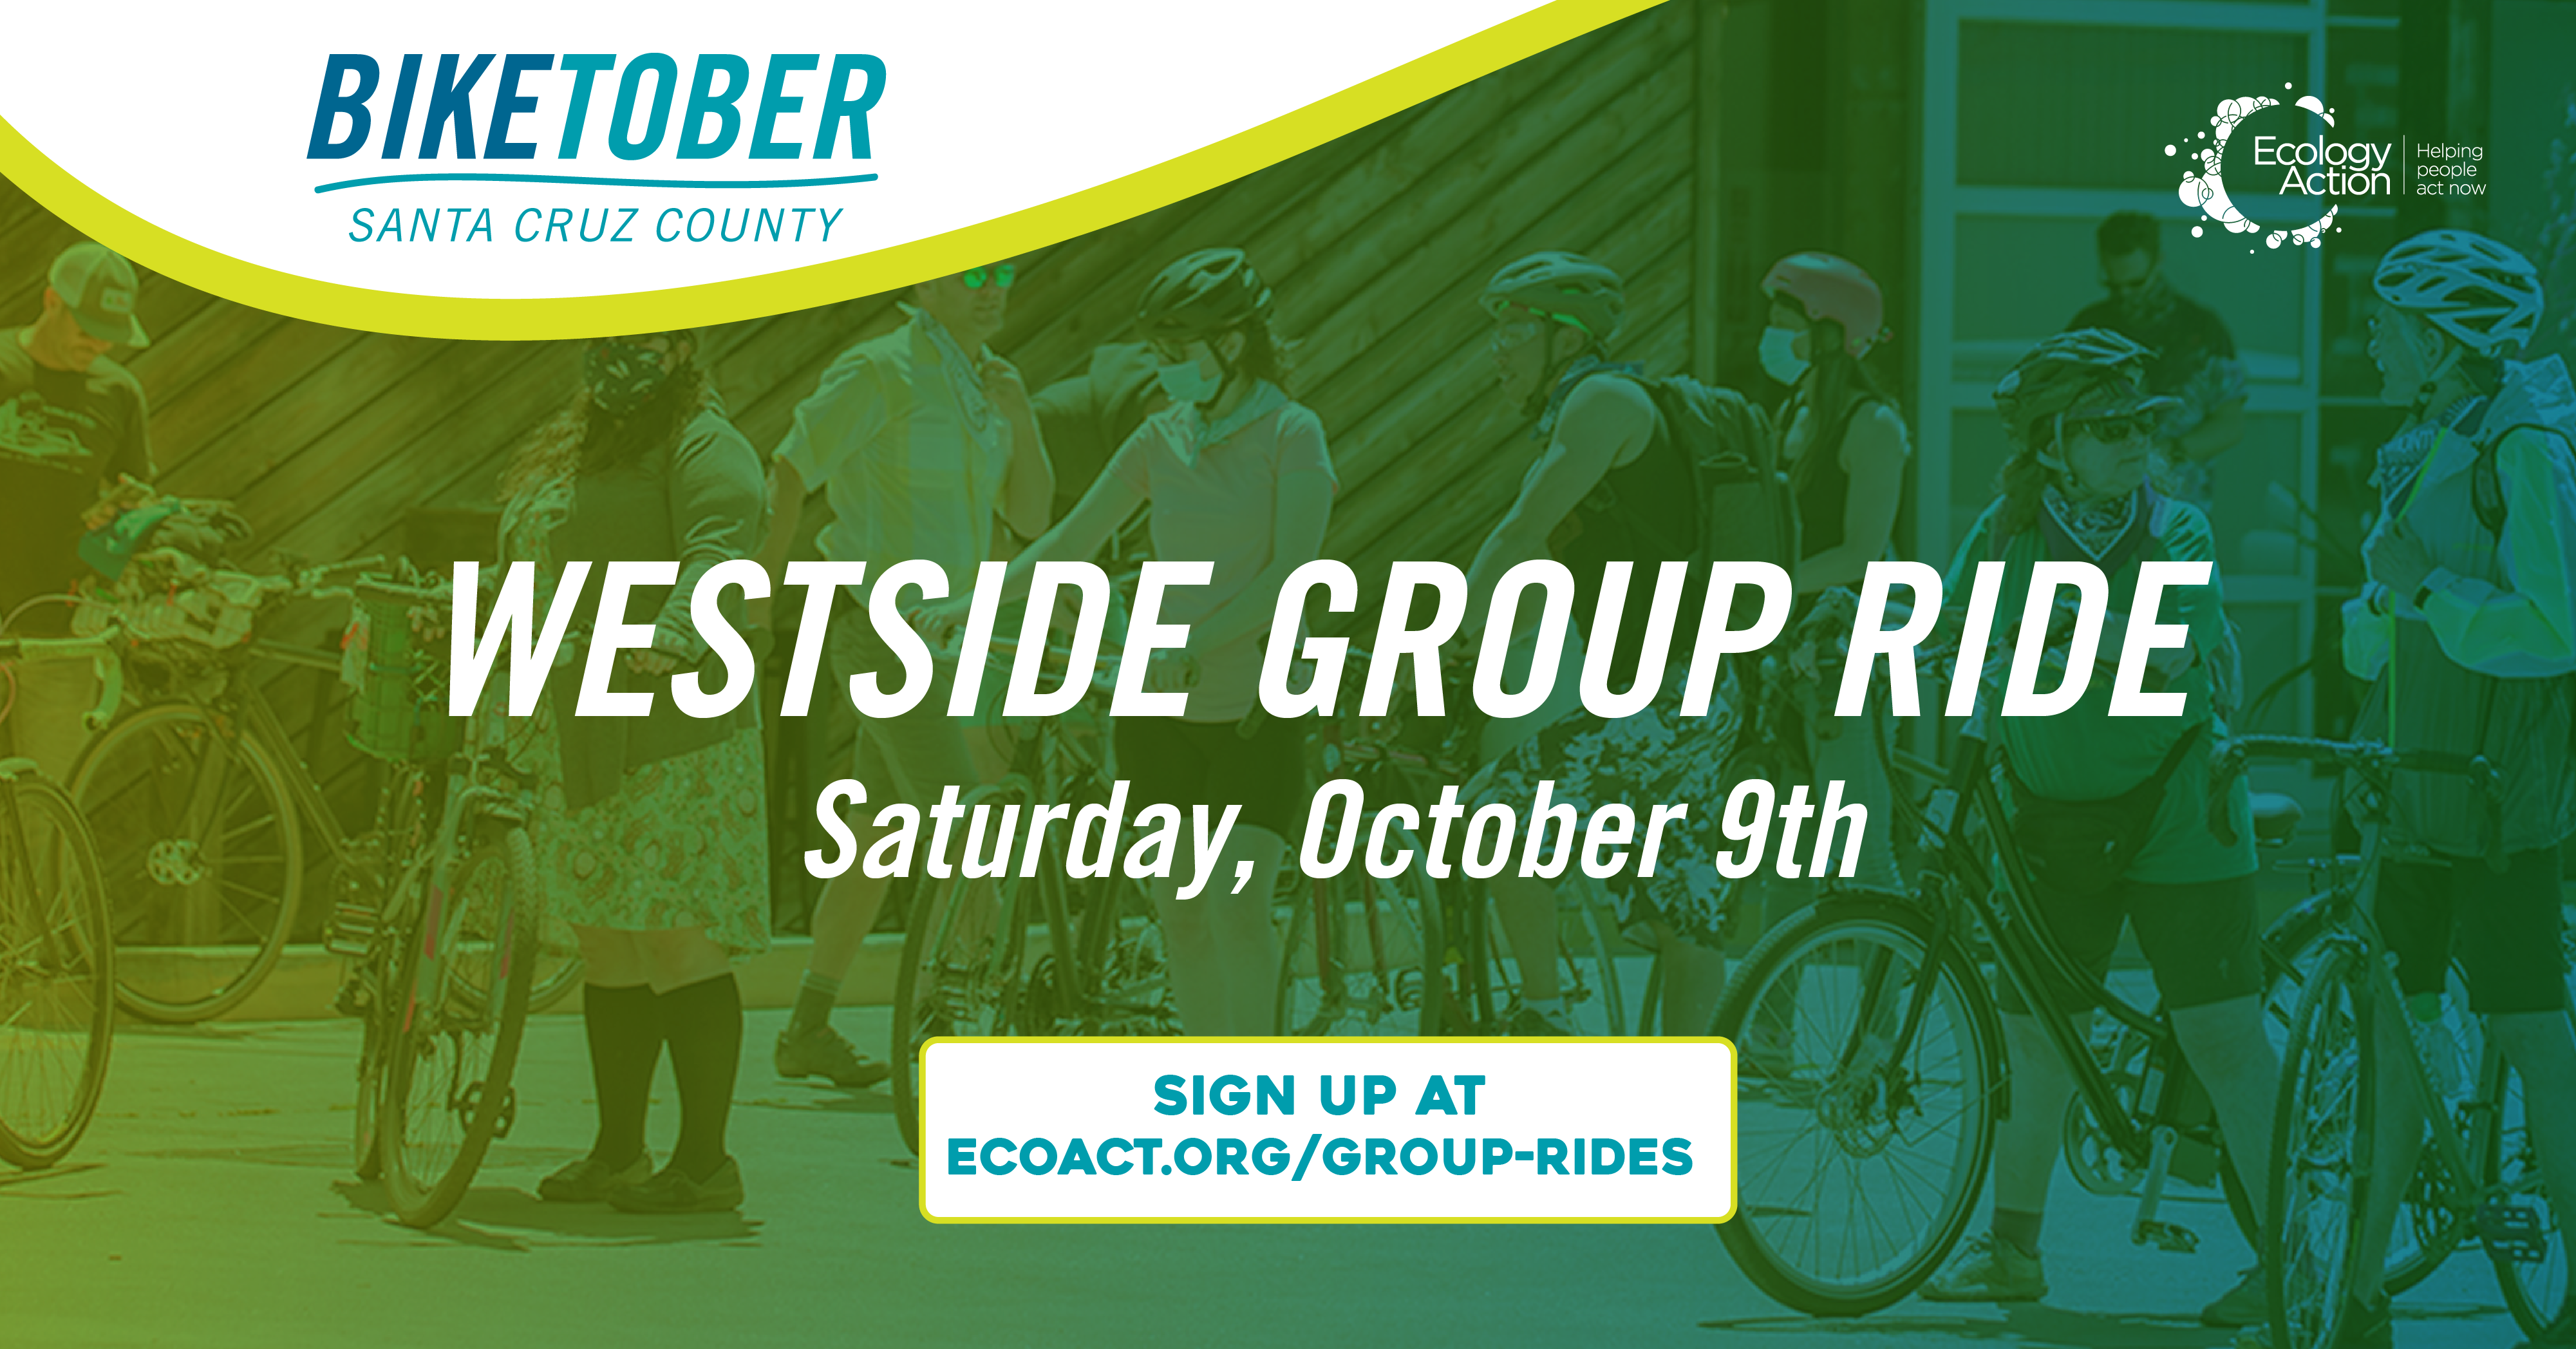 Biketober Santa Cruz County social media post with a community of bike riders standing with their bikes. They have helmets on and the image has a green blue overlay theme. Text reads 'Westside group ride Saturday, October 9th'.